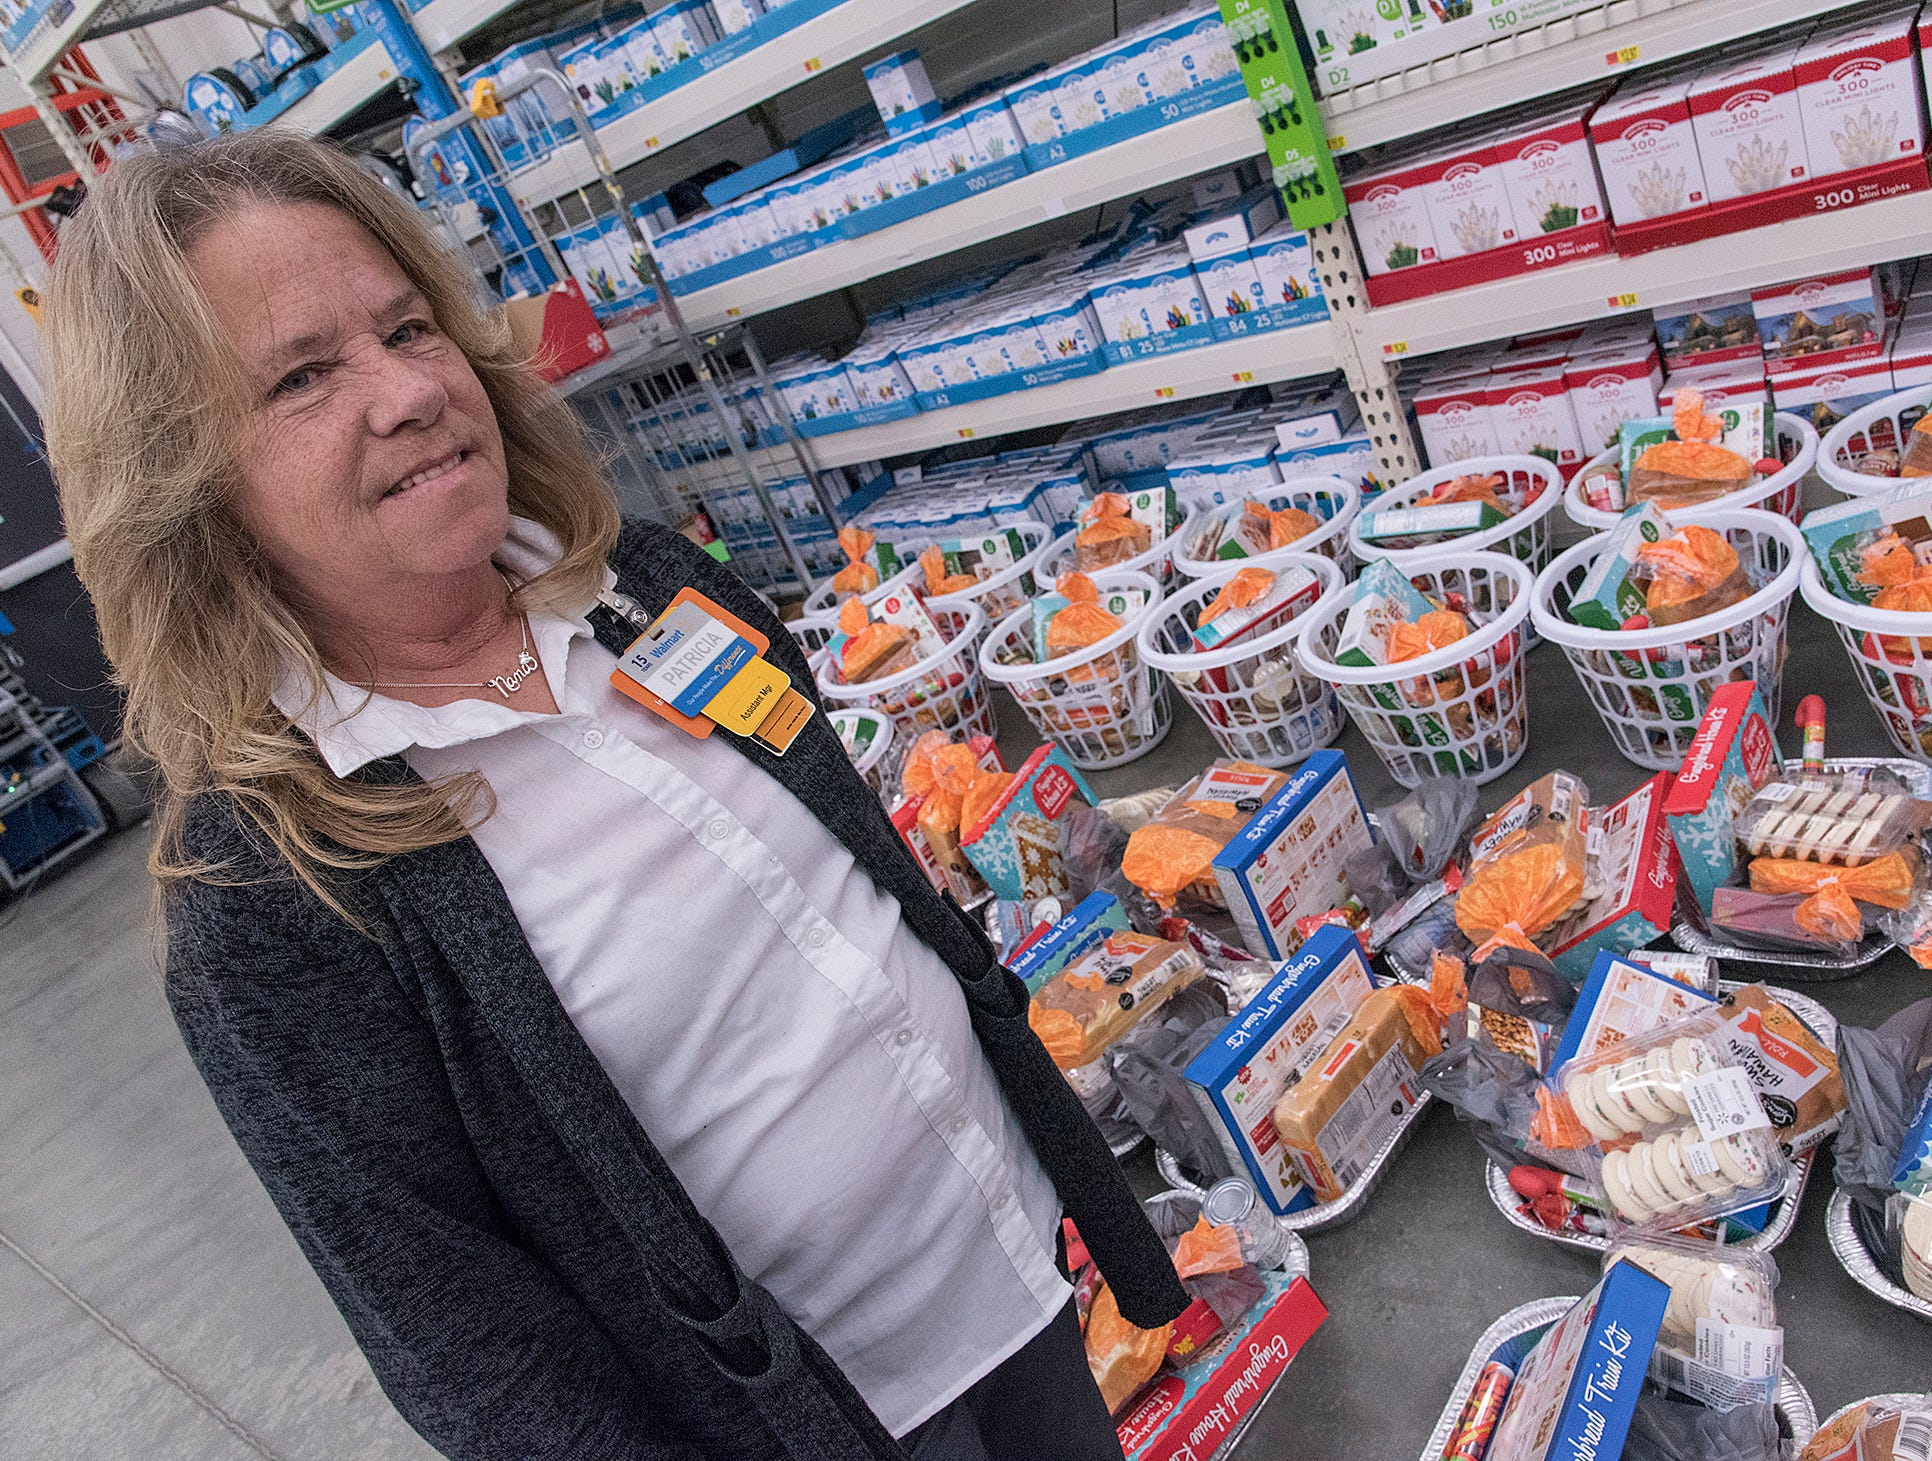 Walmart Assistant Manager Patricia Braidwood tells us that Walmart's food basket donation will go to the families in the program.